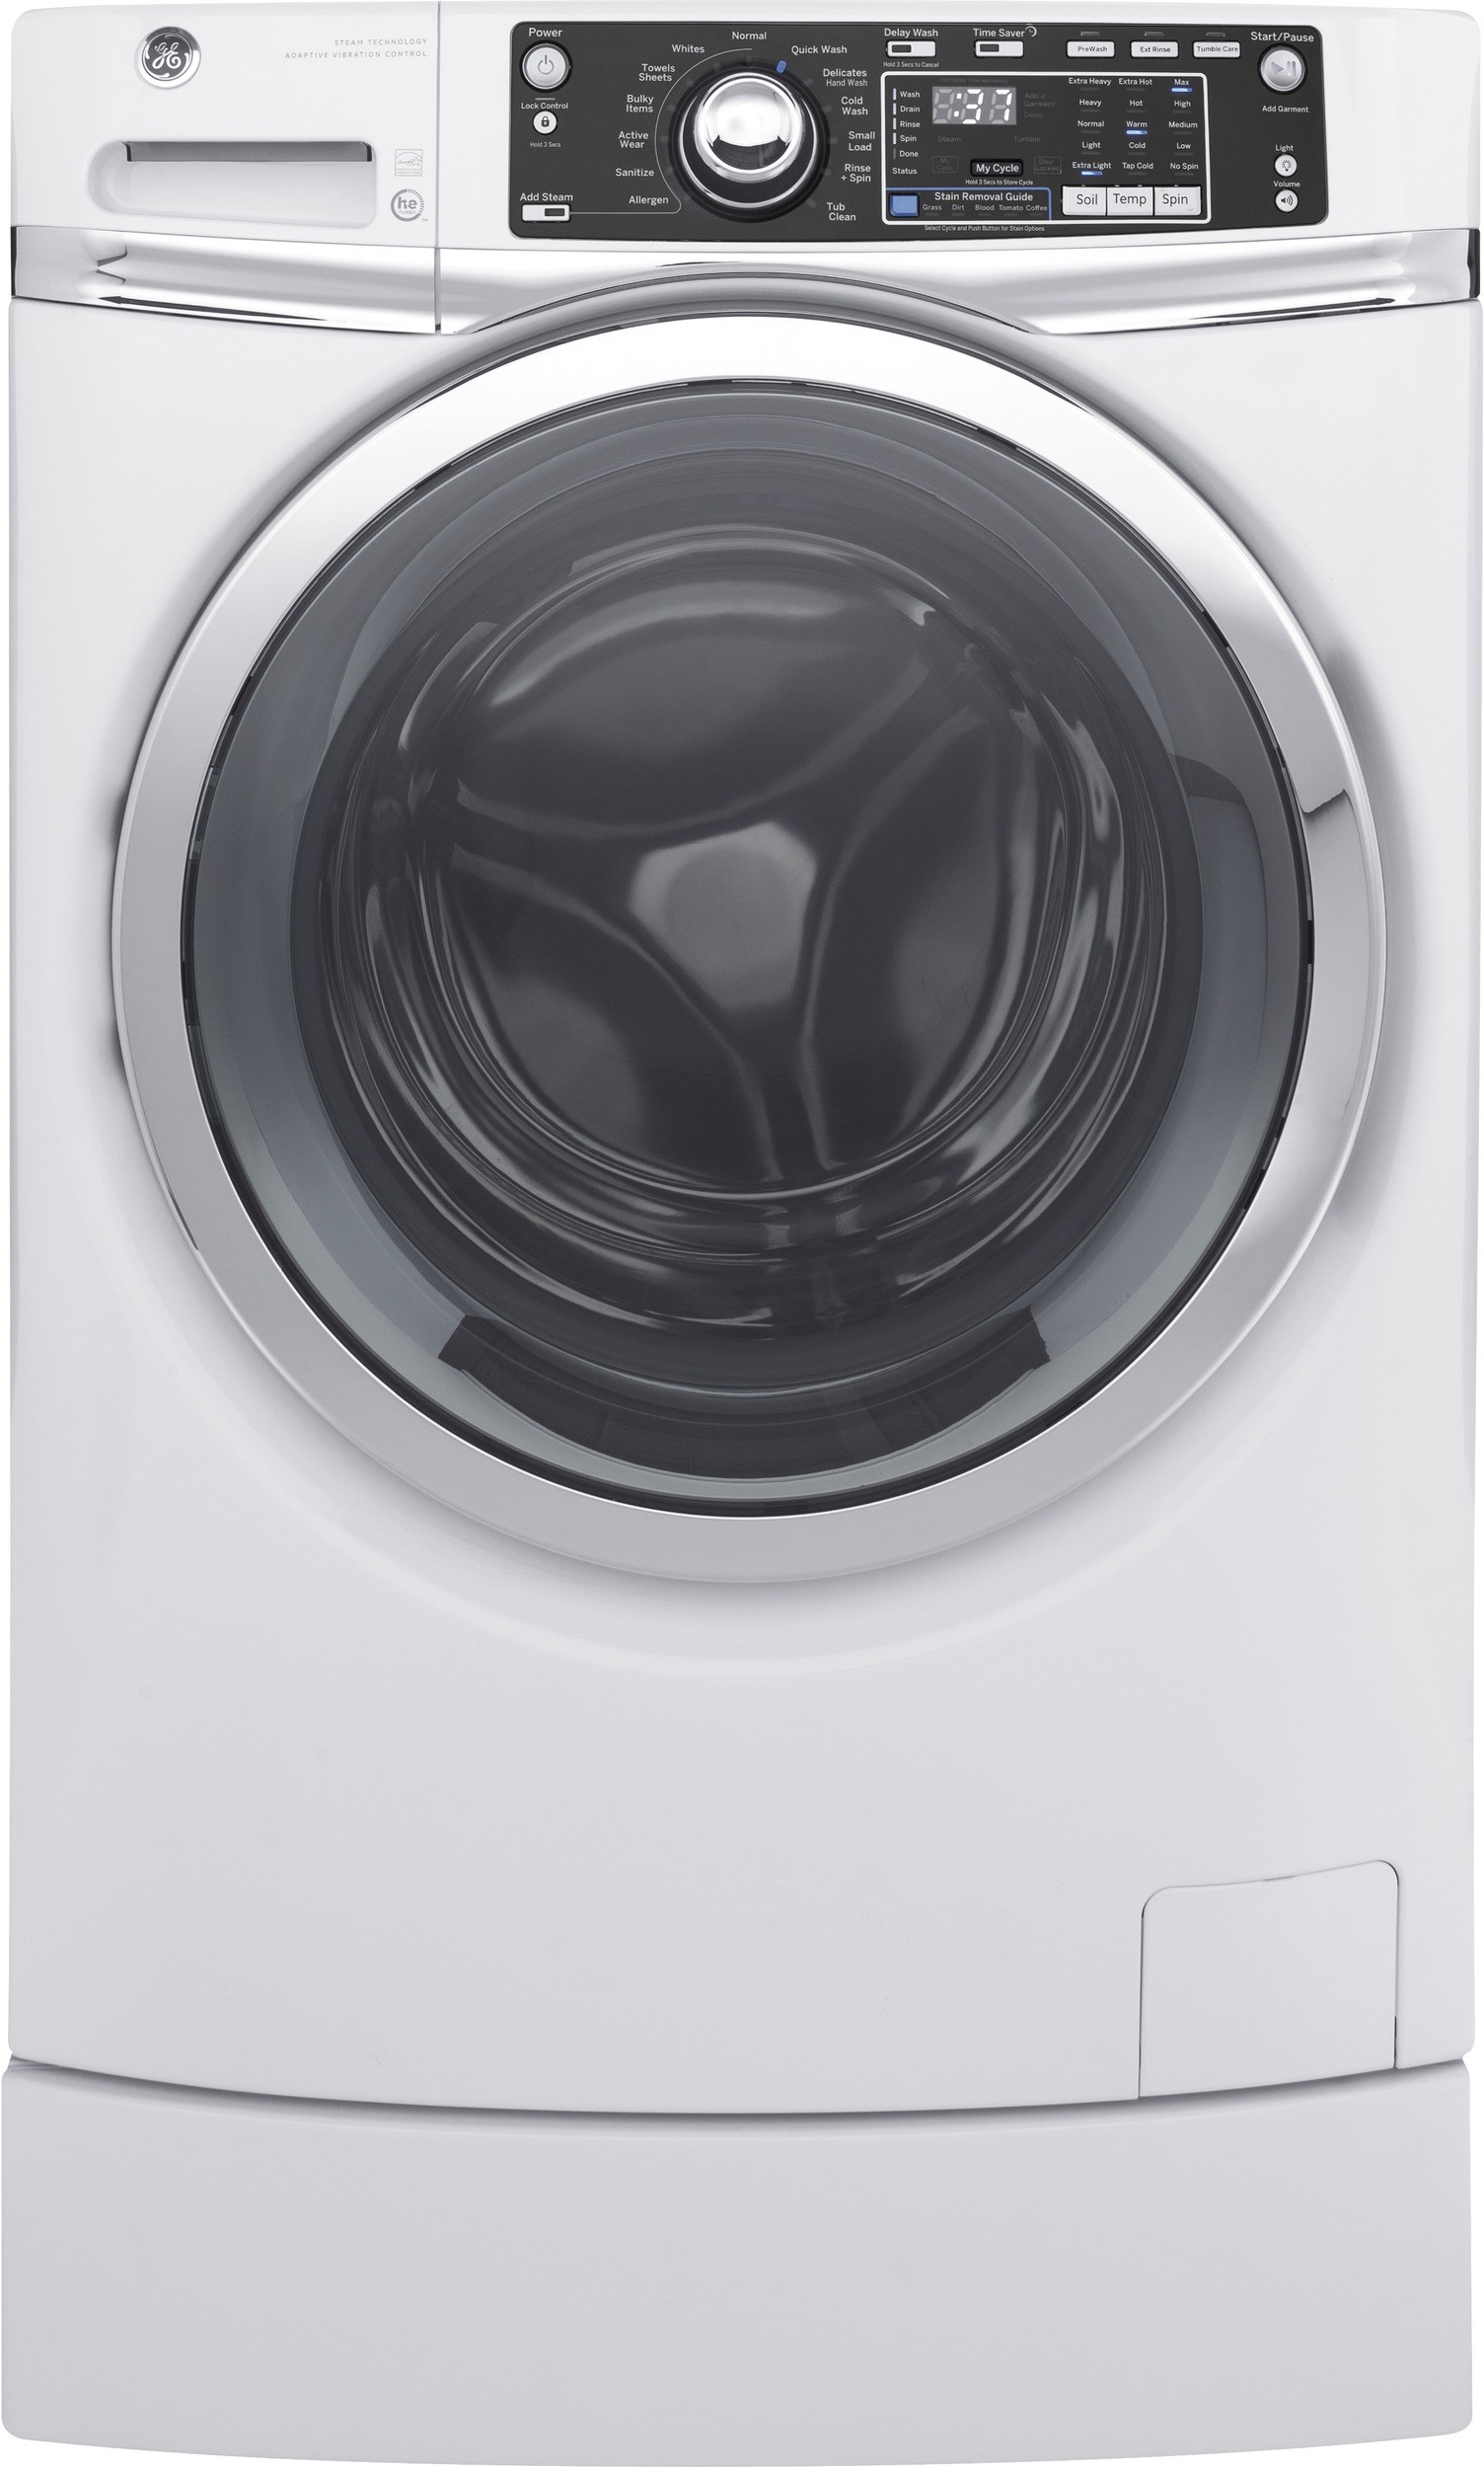 Capacity Steam 13 Wash Cycles Built In Rightheight Pedestal Quick Allergen Cycle Nsf Certified Sanitize Precision Dispense Internal Water